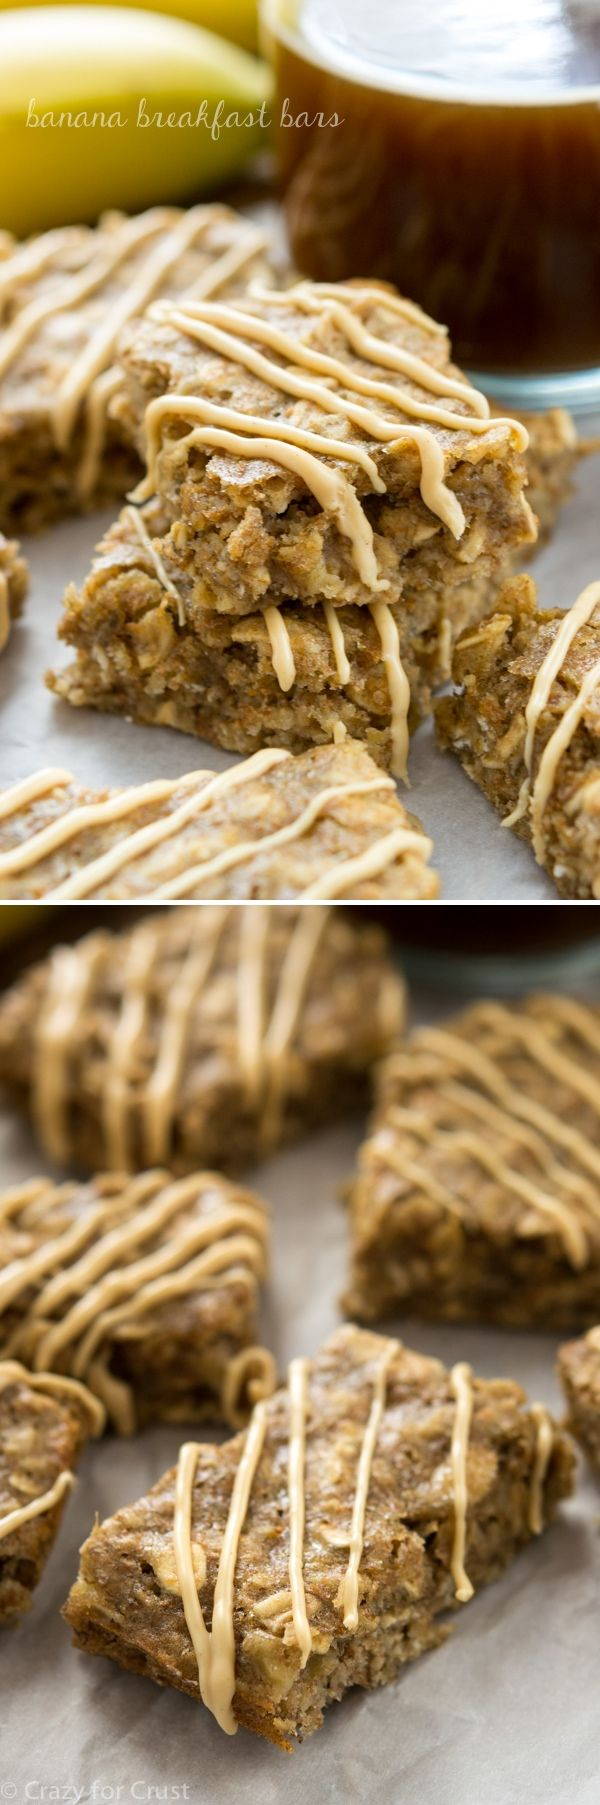 Banana Breakfast Bars are a combination granola bar, banana bread, and blondie all in one. Lighter than all 3, it's a perfect snack!